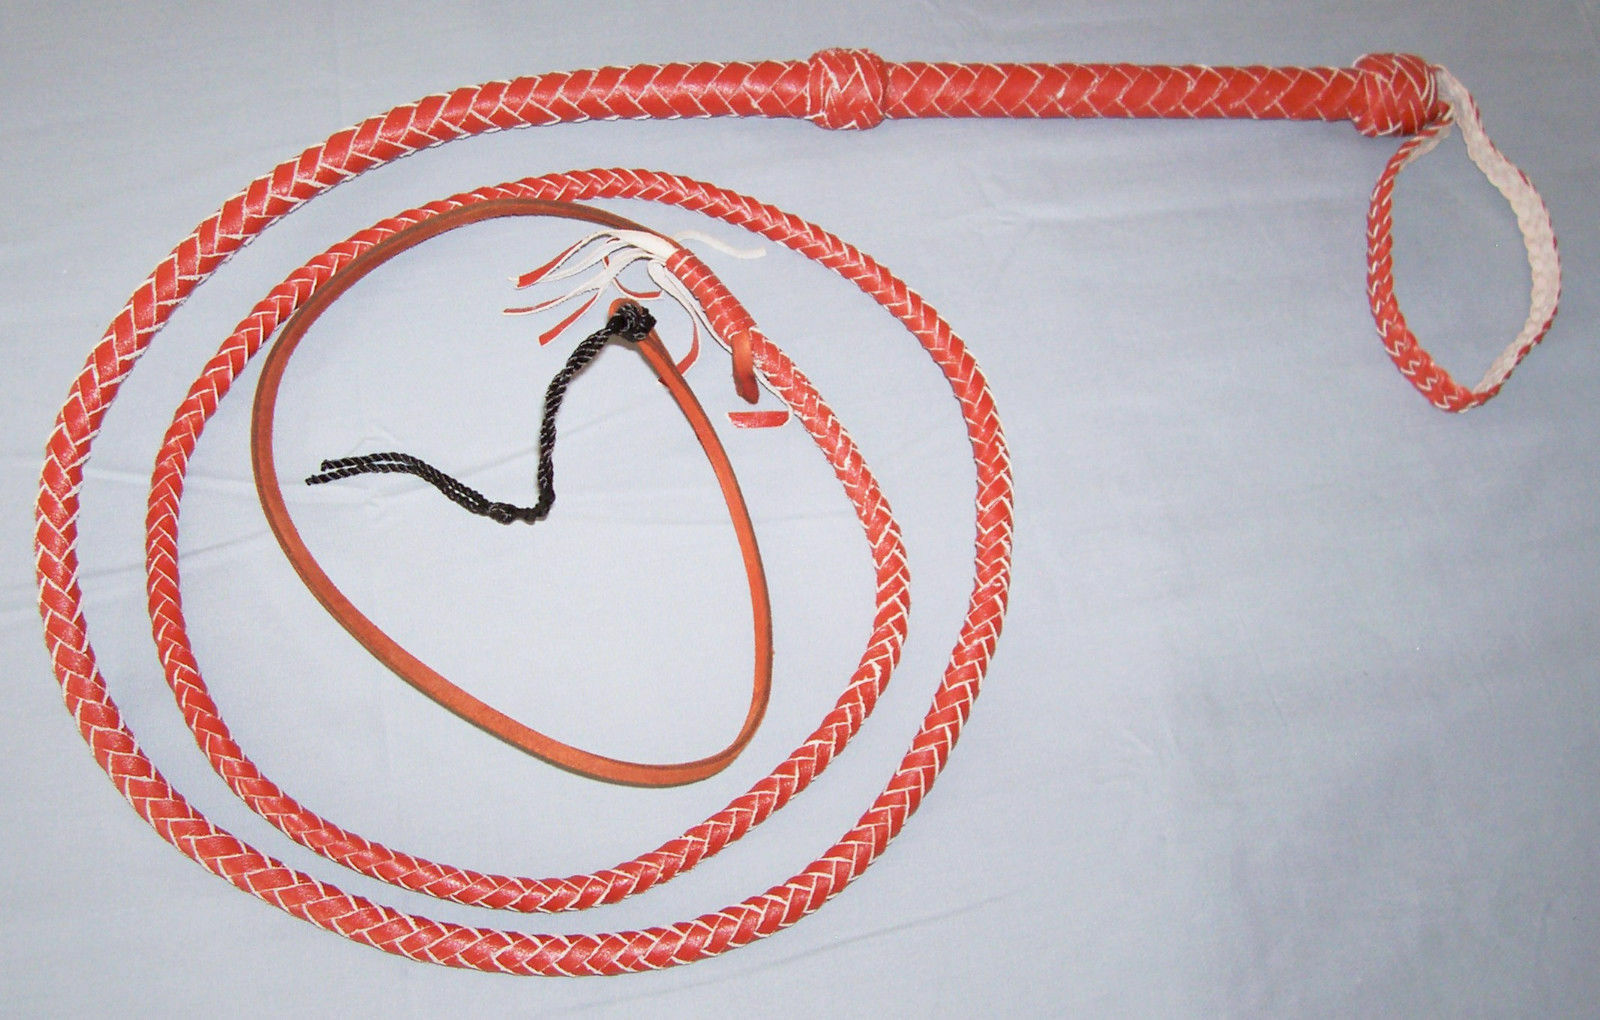 6 foot 10 plait  DARK TAN INDIANA  JONES STYLE LEATHER BULLWHIP  (Real bull whip)  large discount